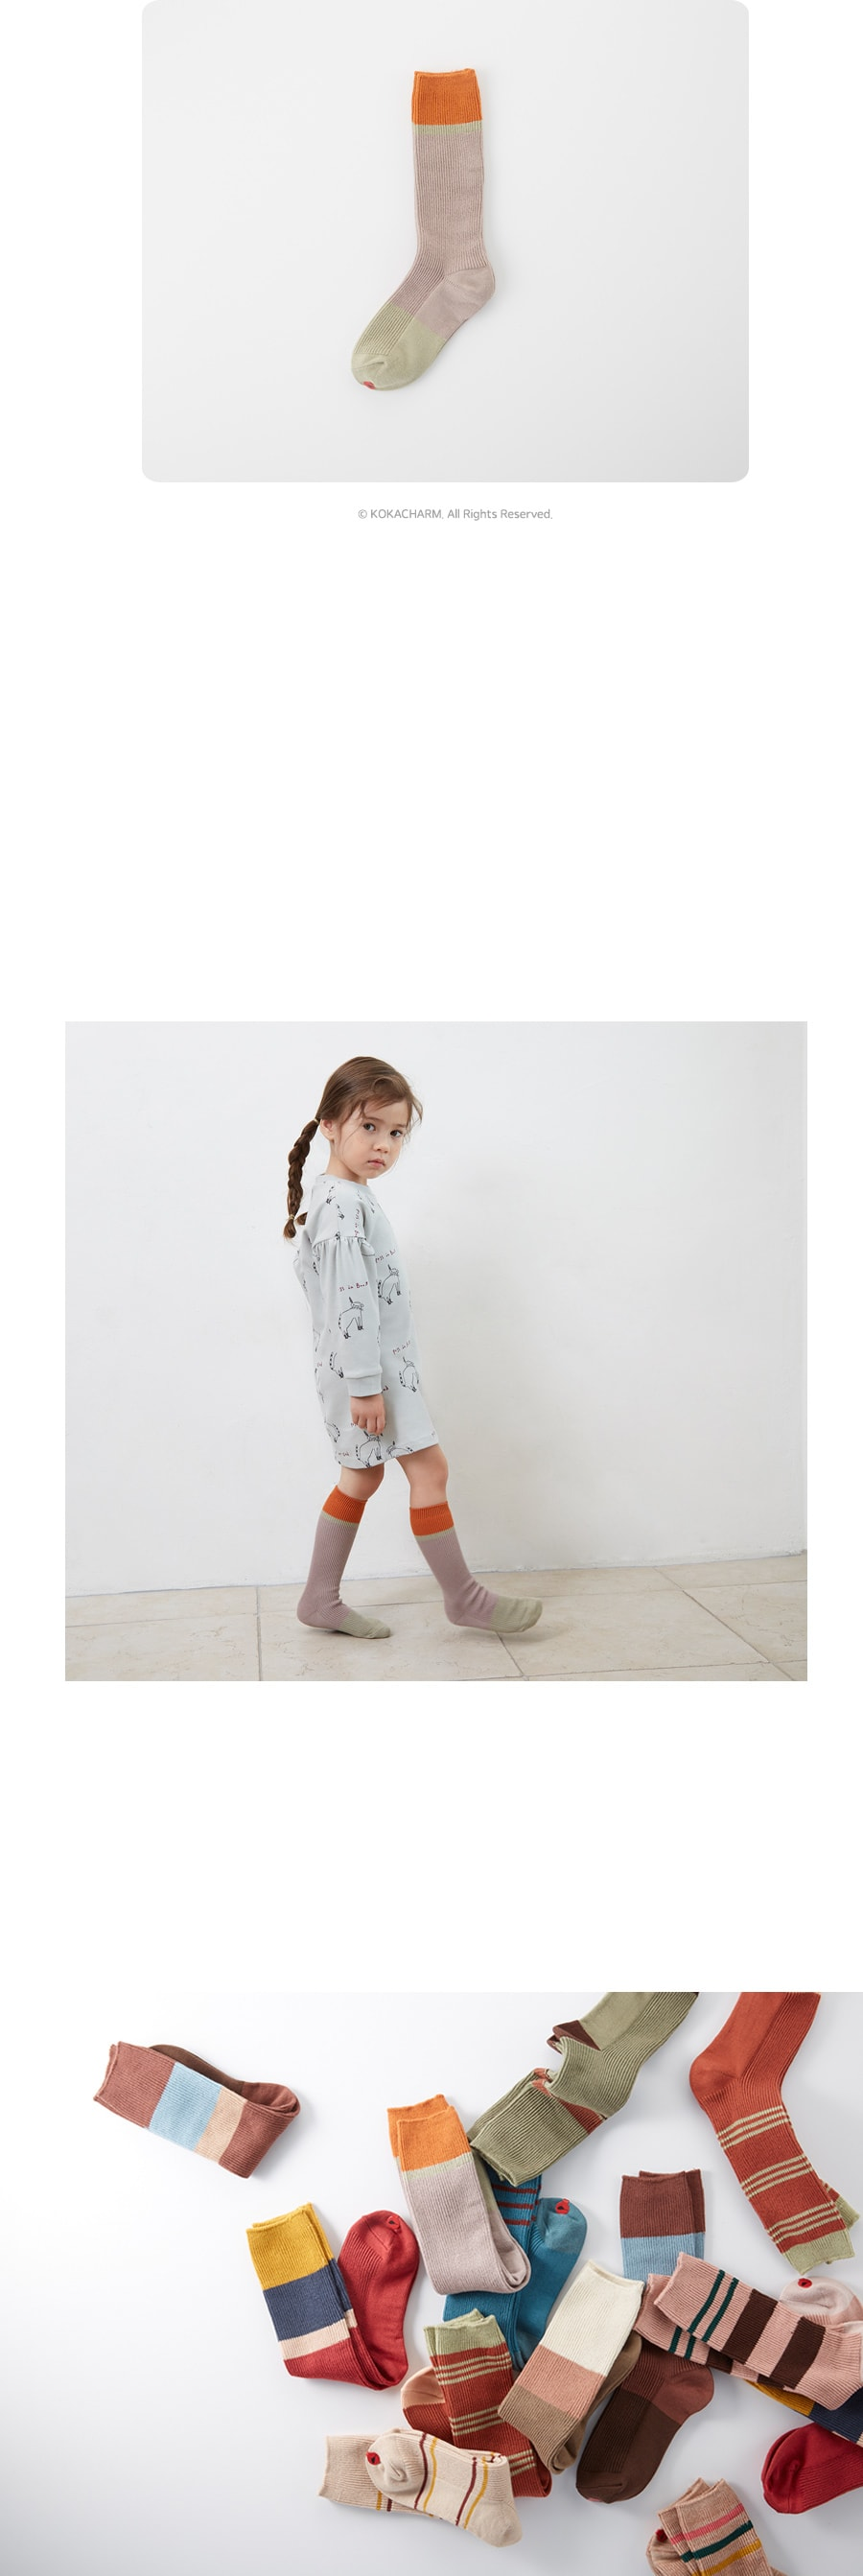 KOKACHARM - Korean Children Fashion - #Kfashion4kids - Deer Socks - 4